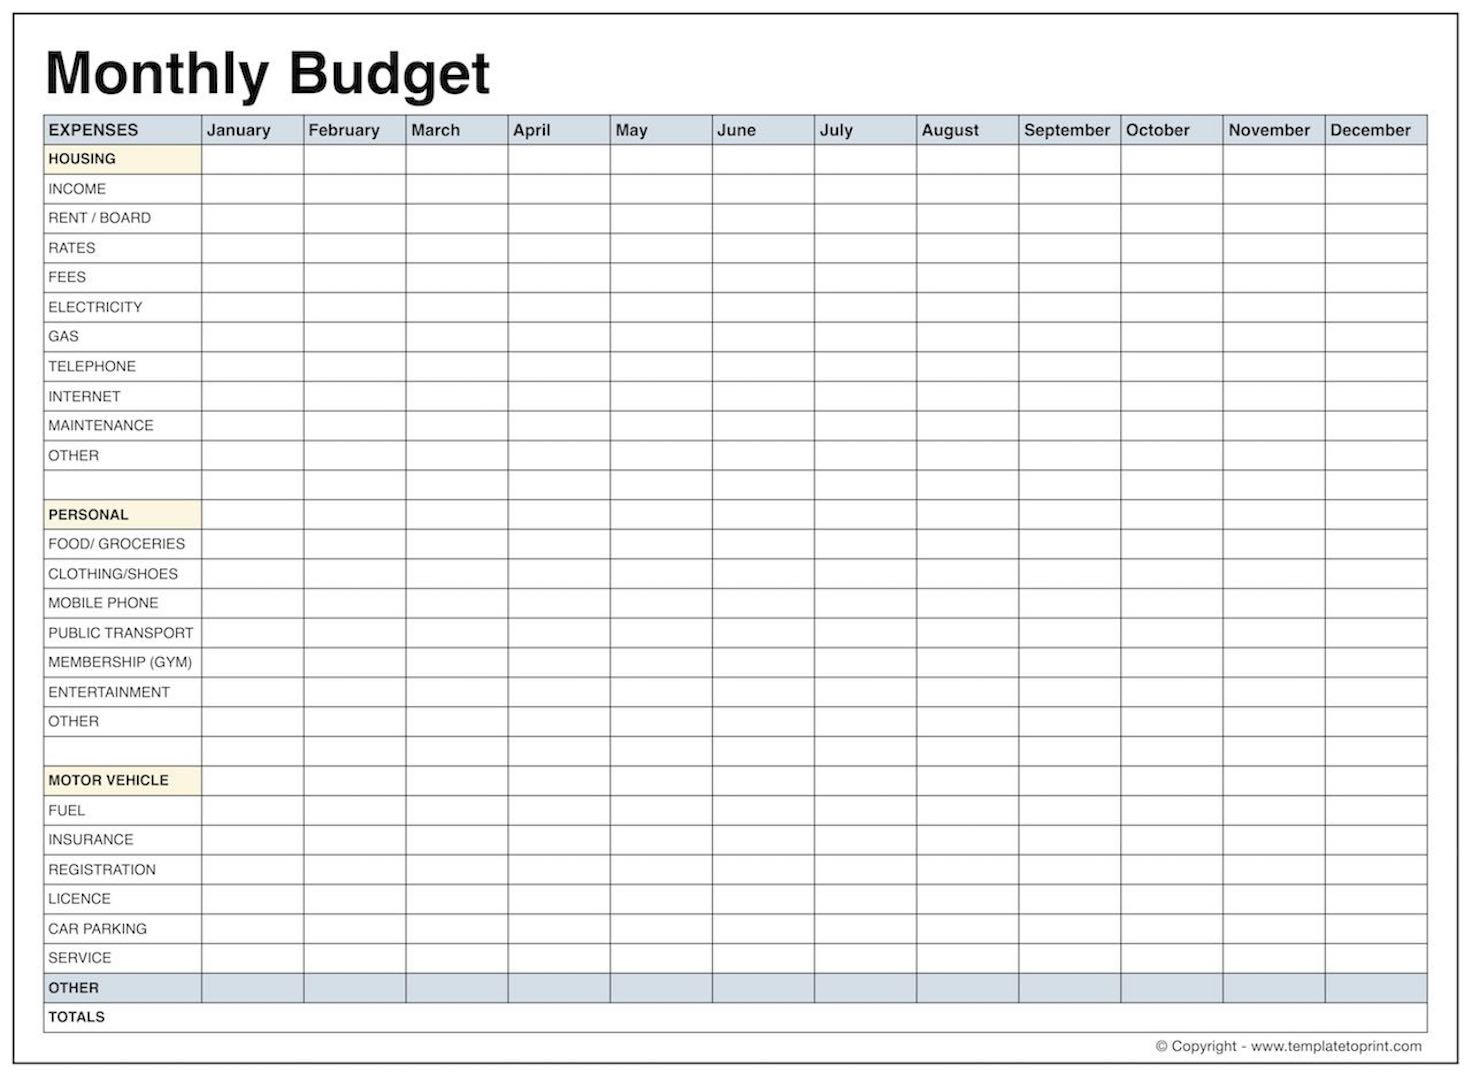 Blank Monthly Budget Template